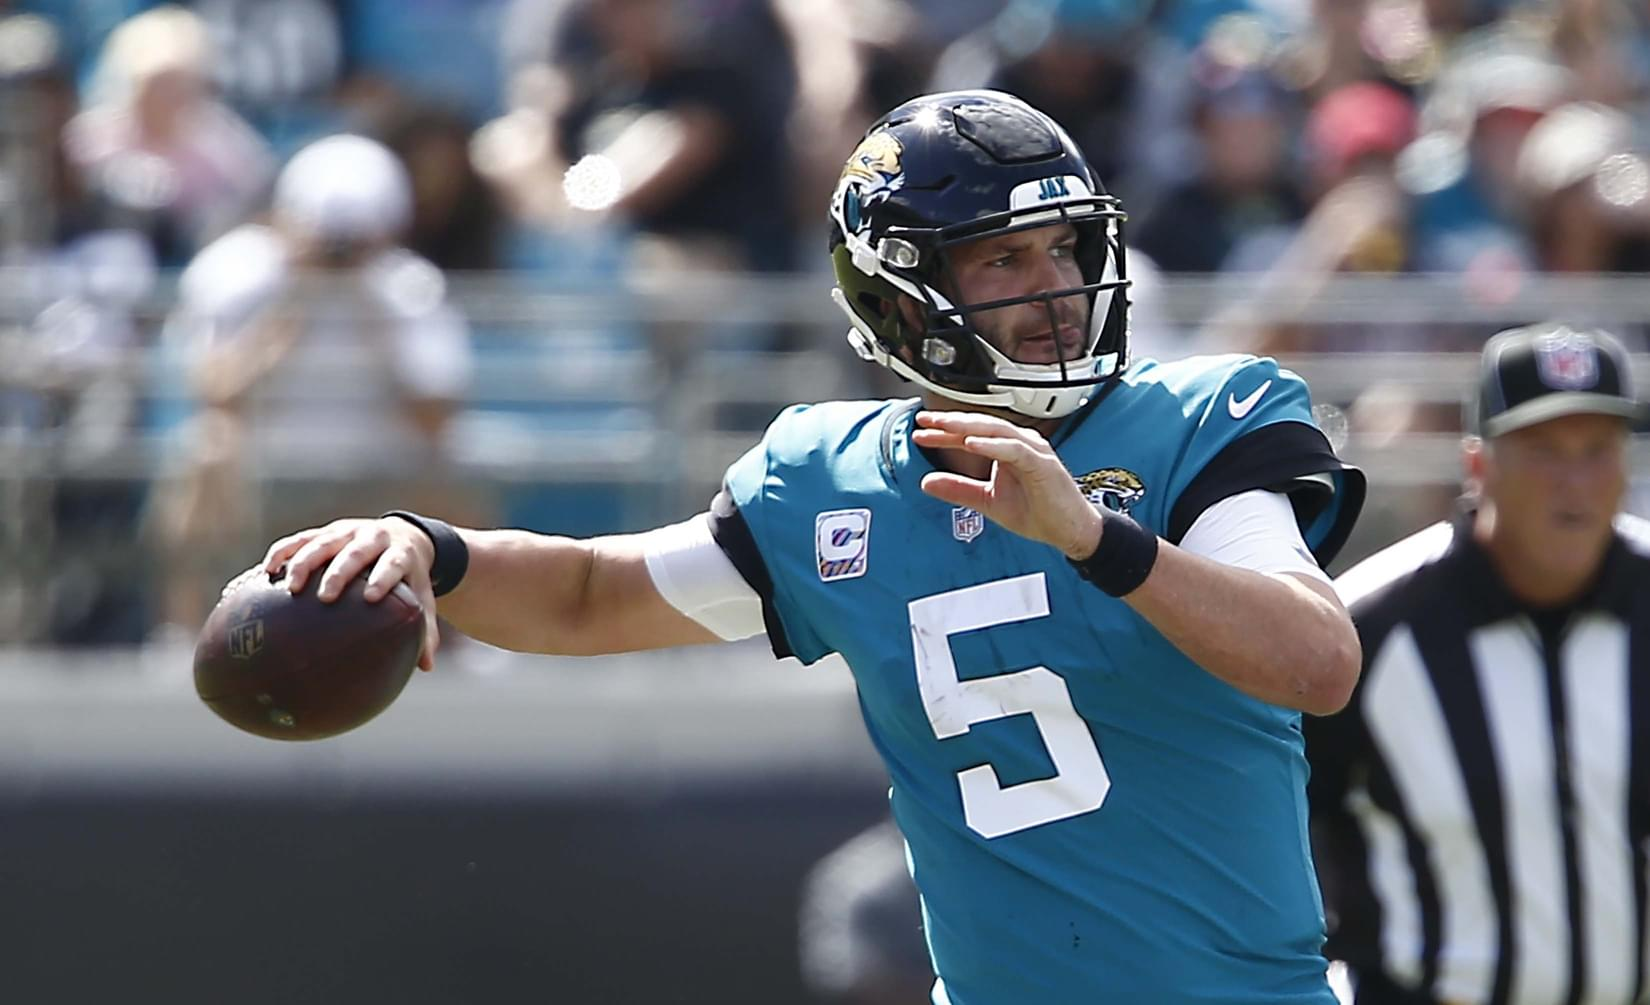 LAMM AT LARGE: Does Jags turnaround start in Indy?